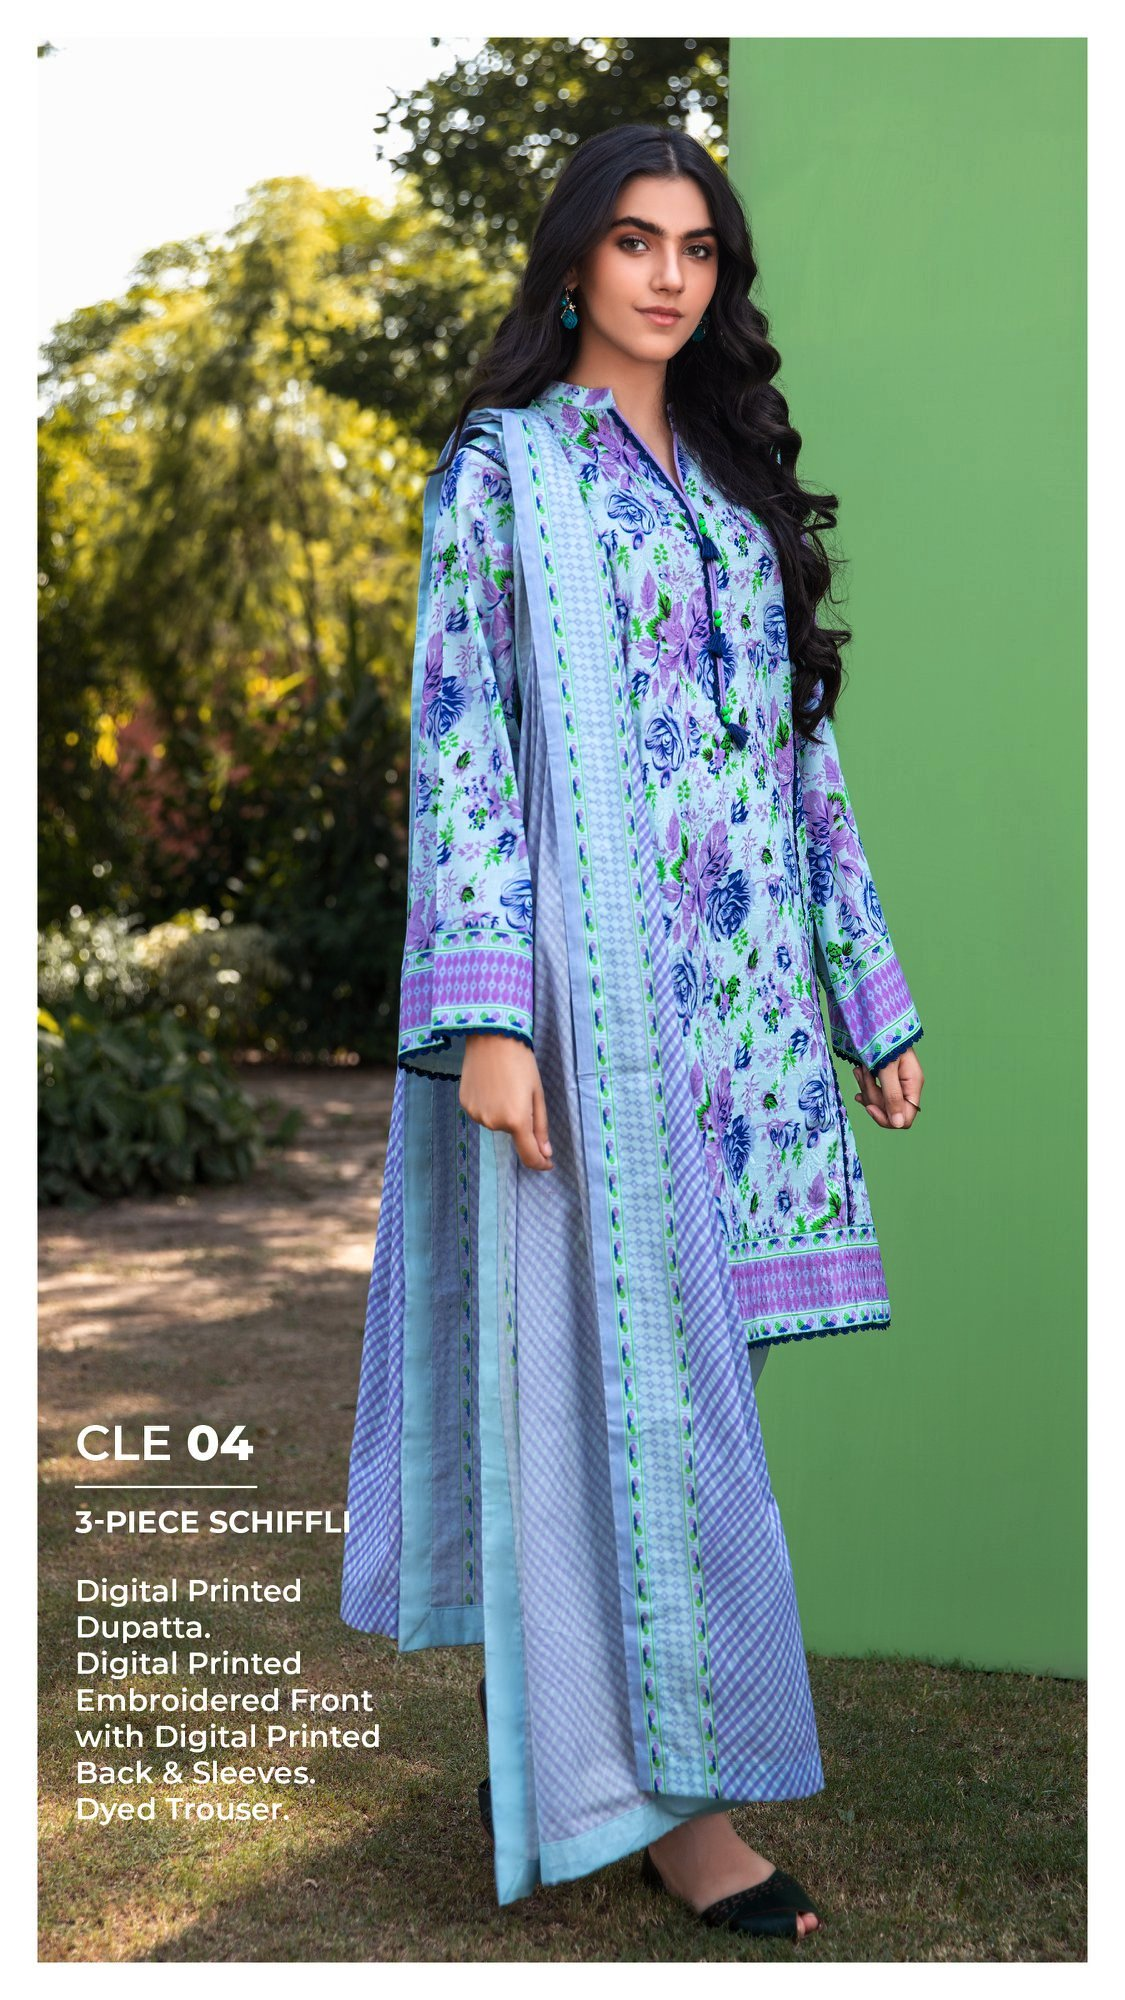 SCHIFFLI Womens Spring Wear Collection 2021 By Gulahmed (16)